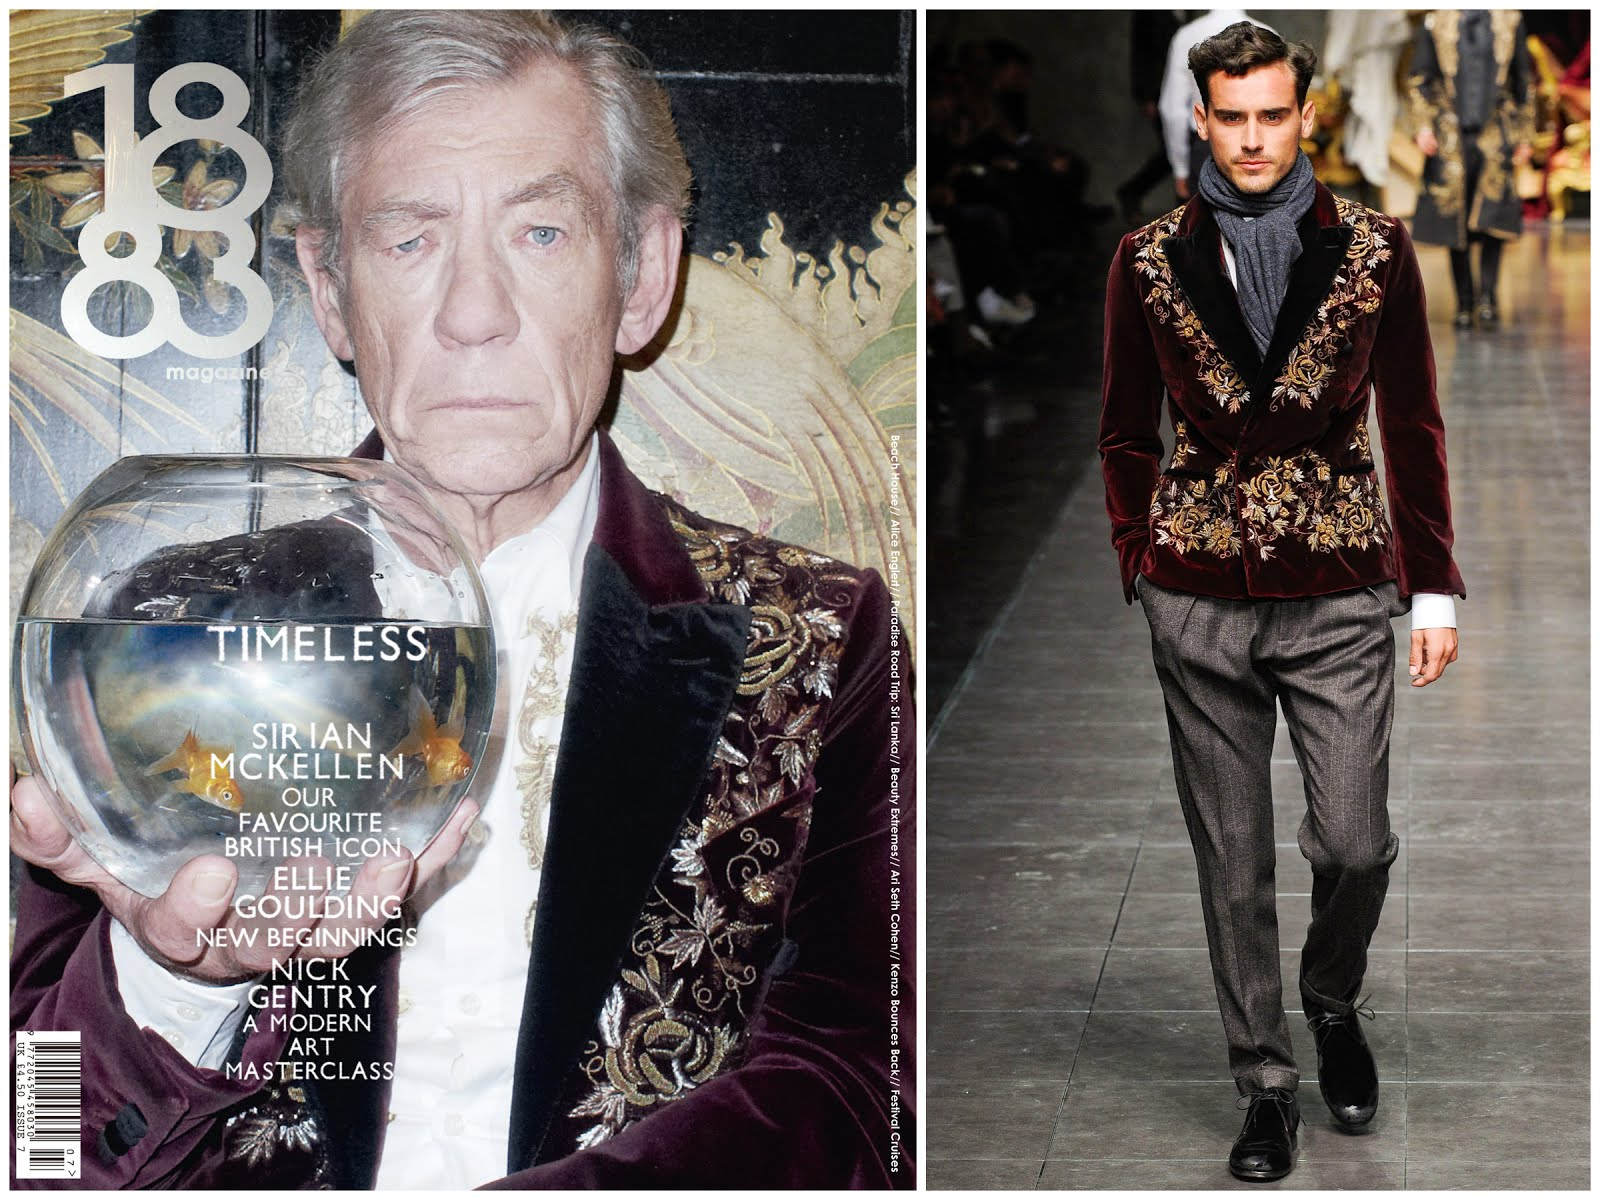 Sir Ian McKellen in Dolce & Gabbana - 1883 Magazine Issue 7